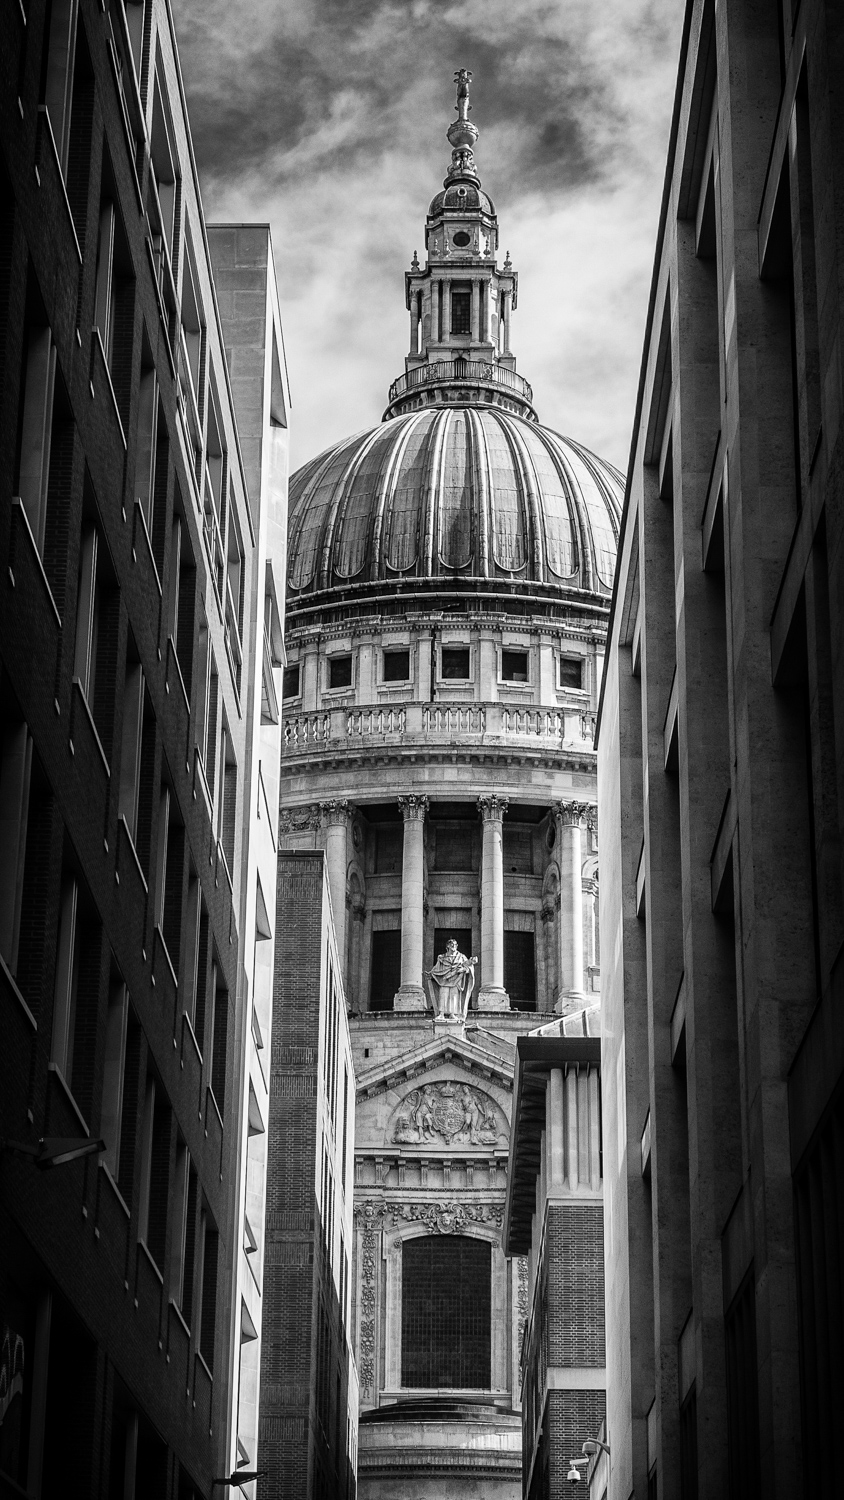 A stolen glimpse of St. Paul's